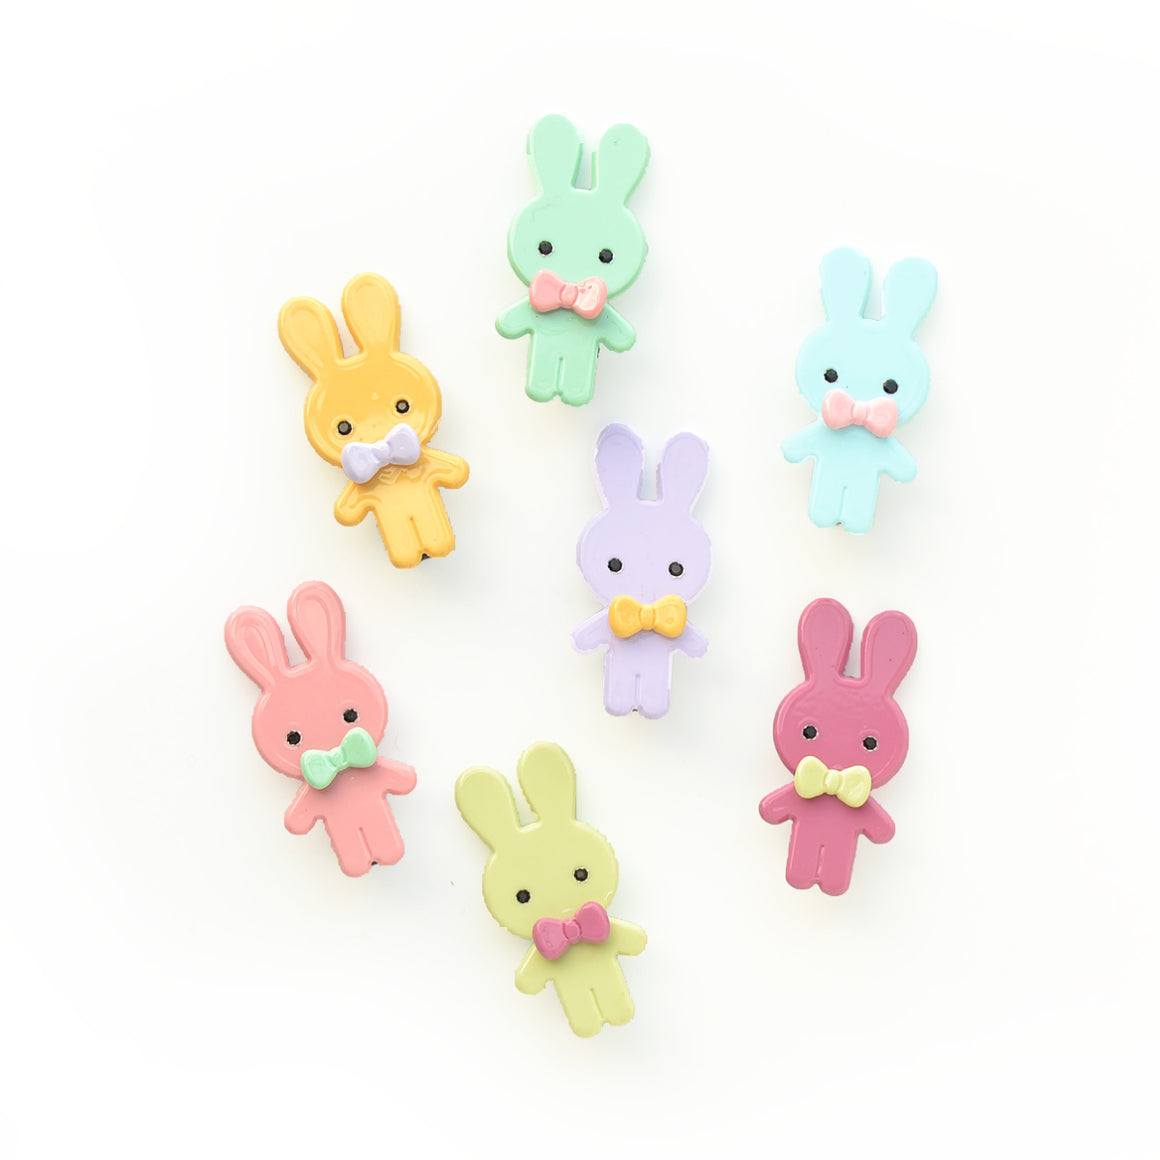 hello shiso hair accessories for girls // plastic bunny pinch clips